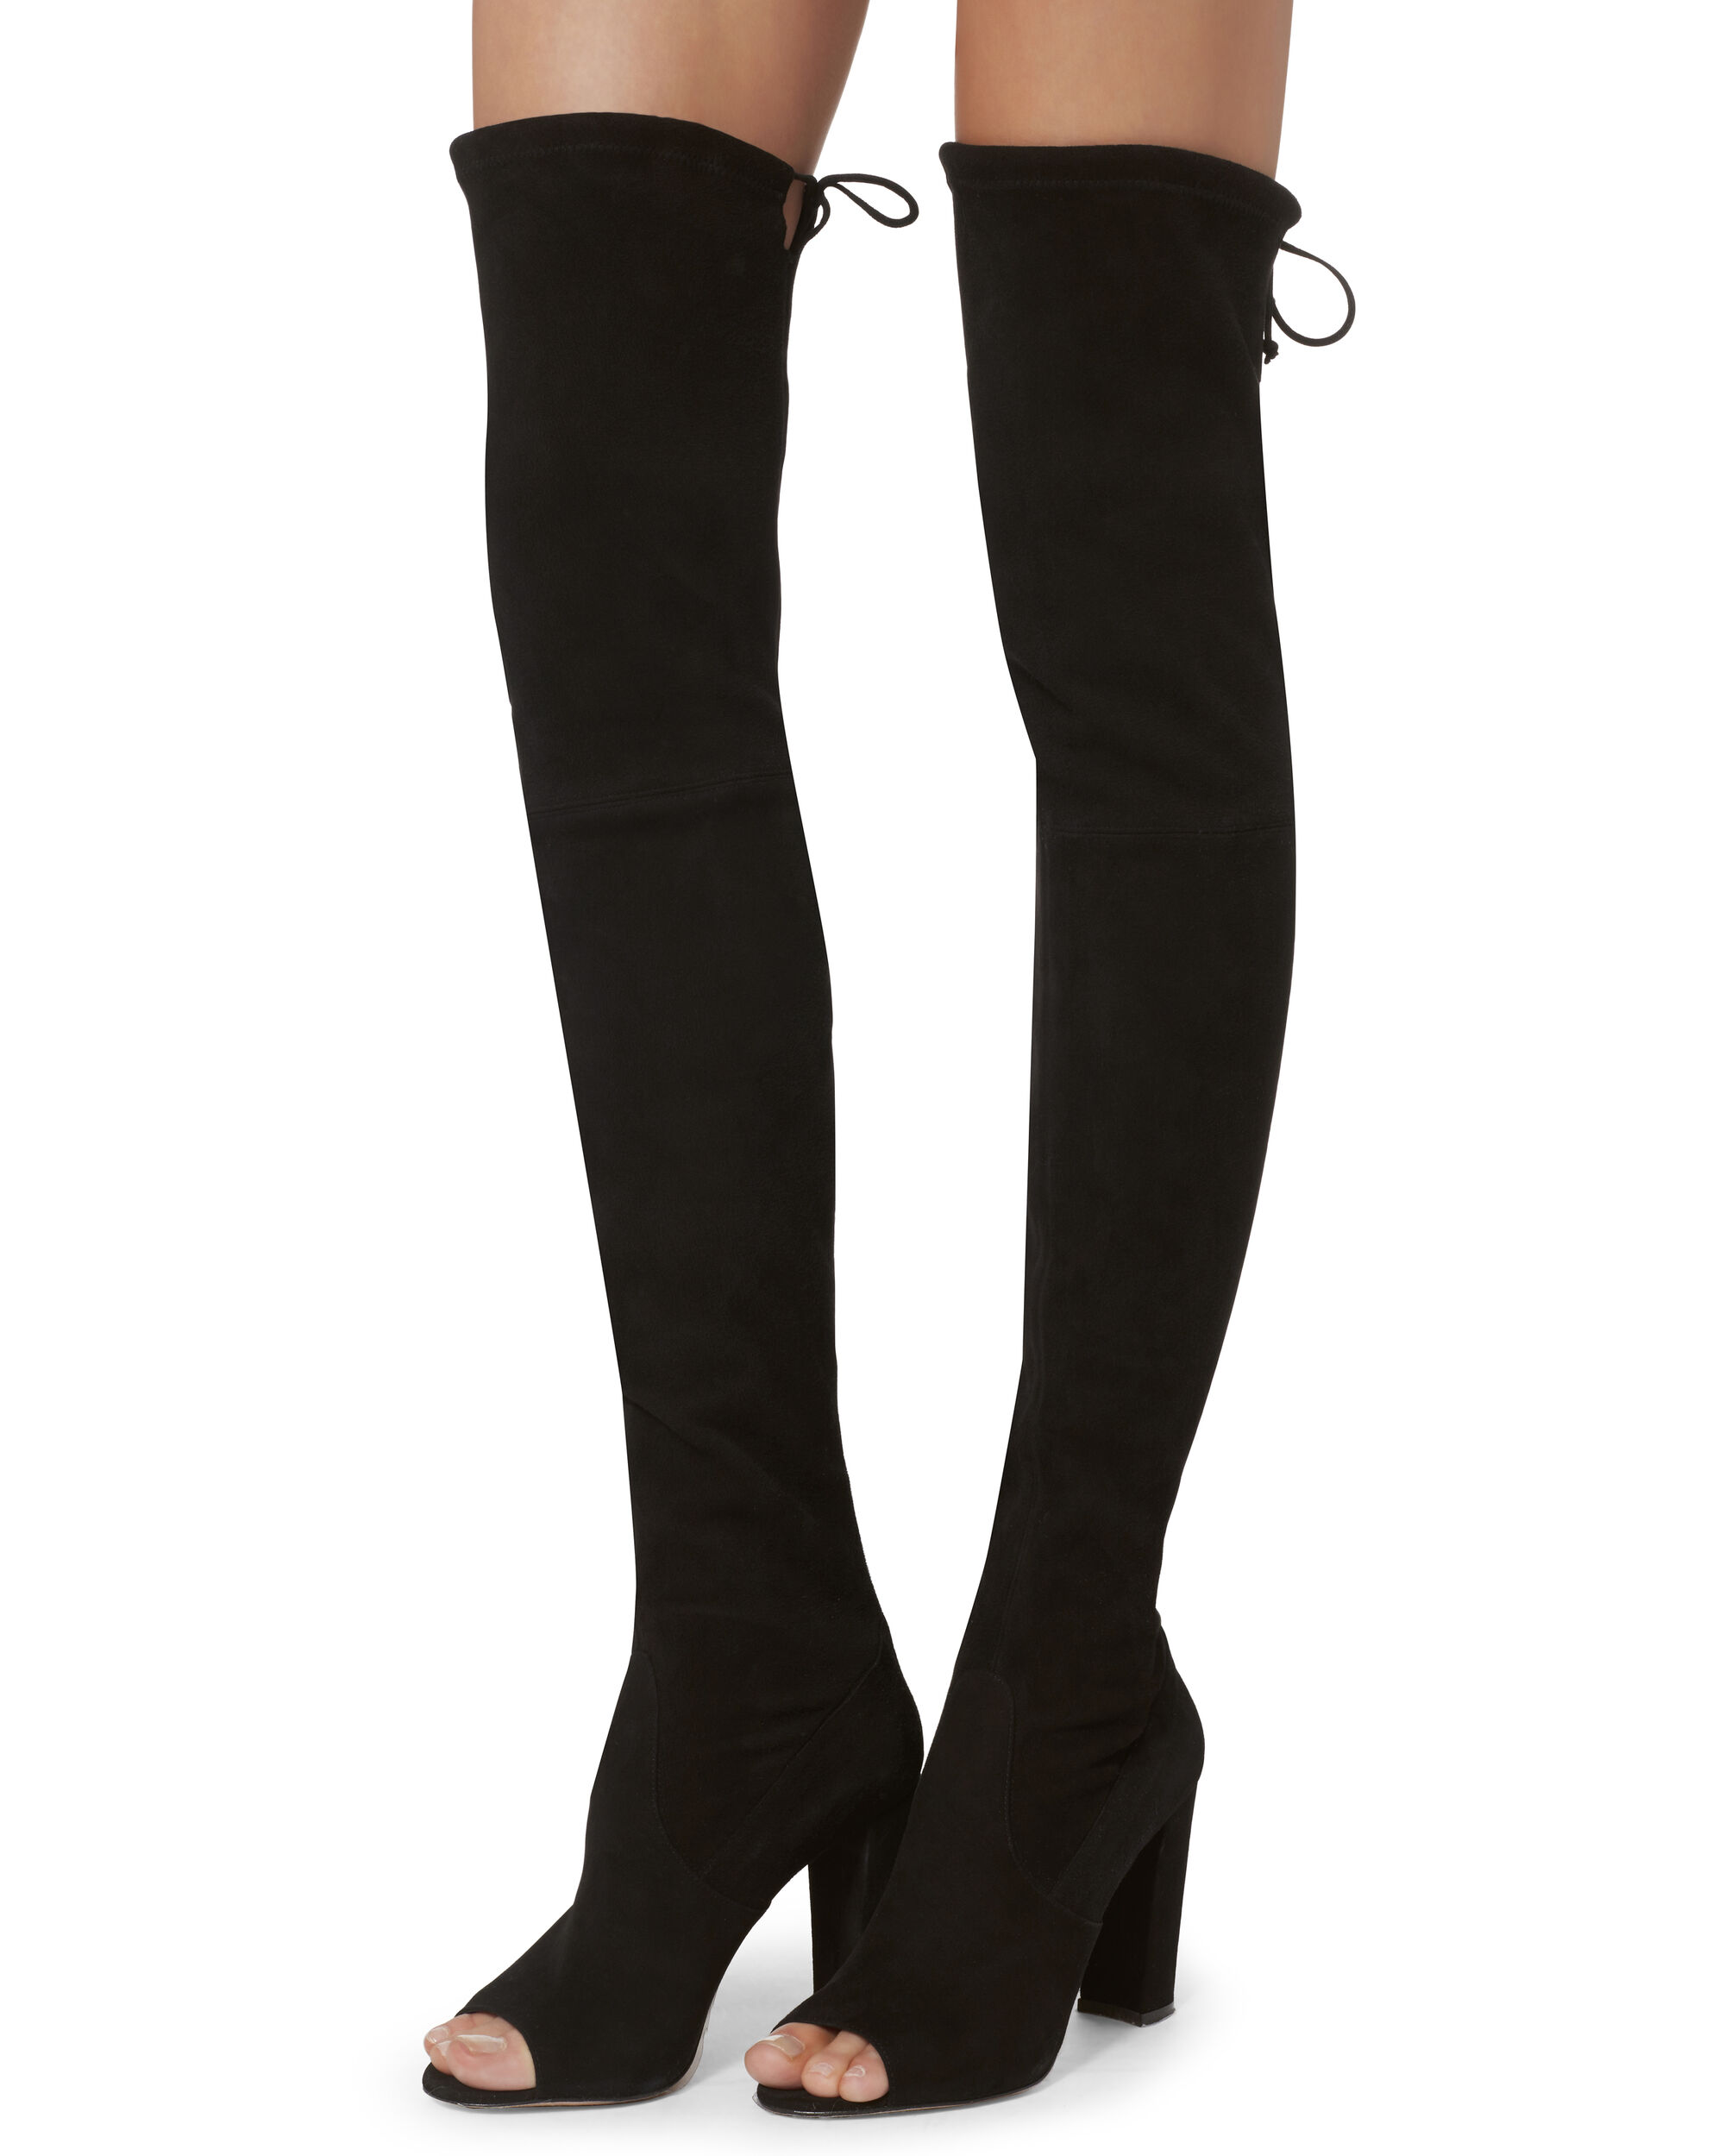 Ostia Suede Open Toe Over-The-Knee Boots, BLACK, hi-res